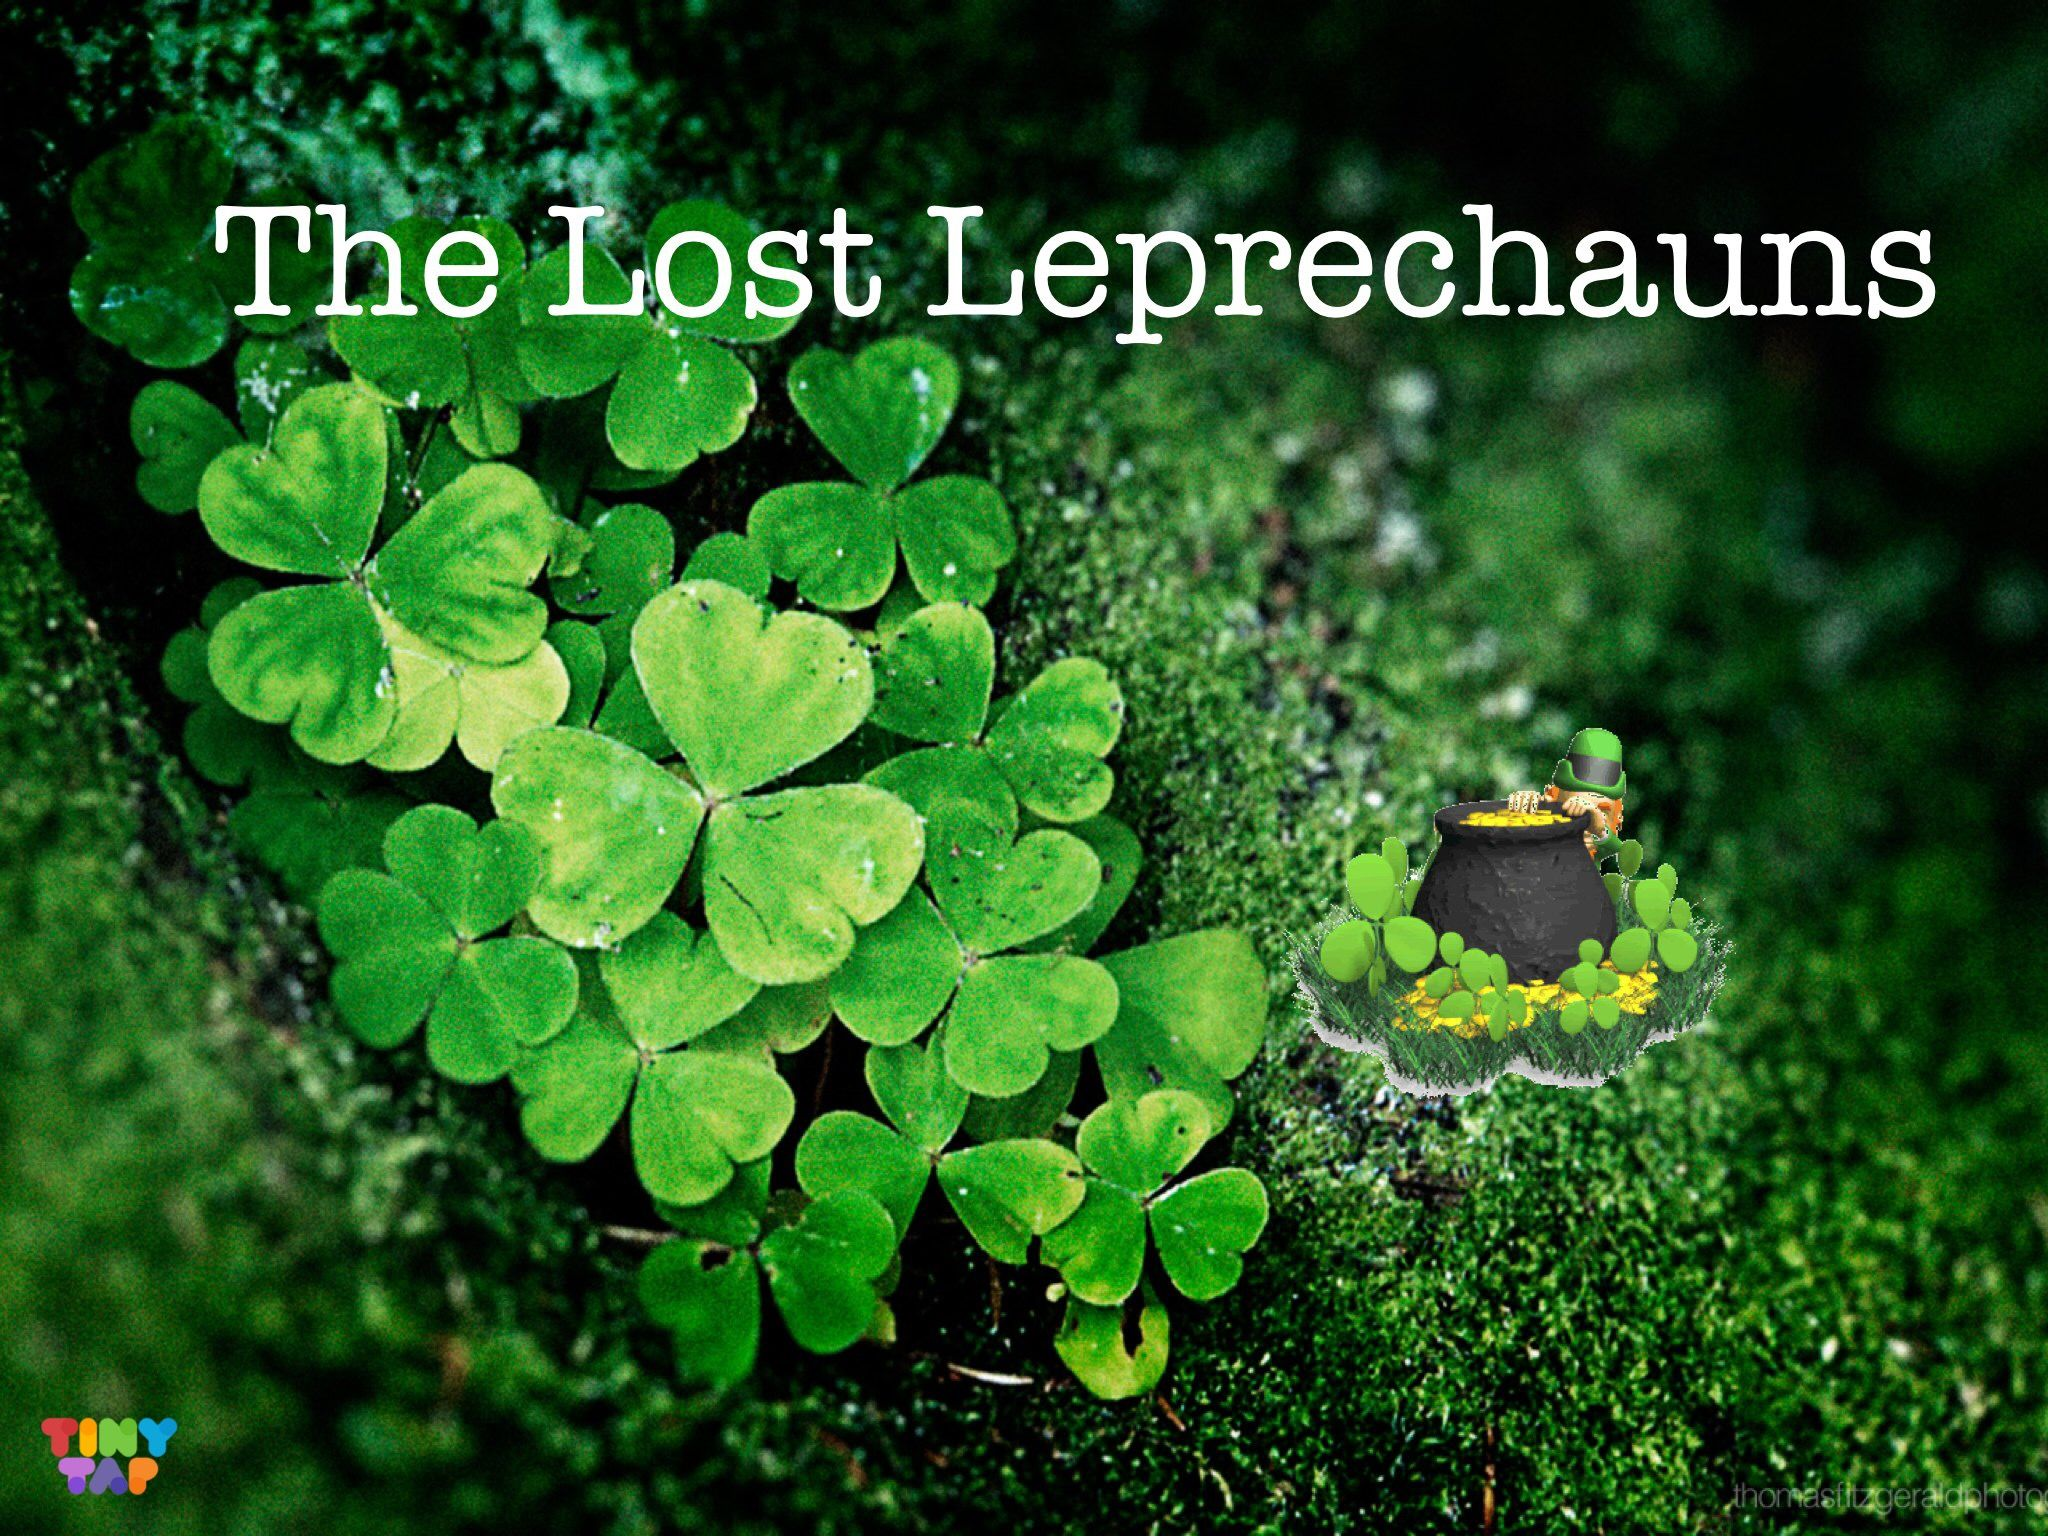 Prepositions For Spatial Concepts With A Leprechaun Theme